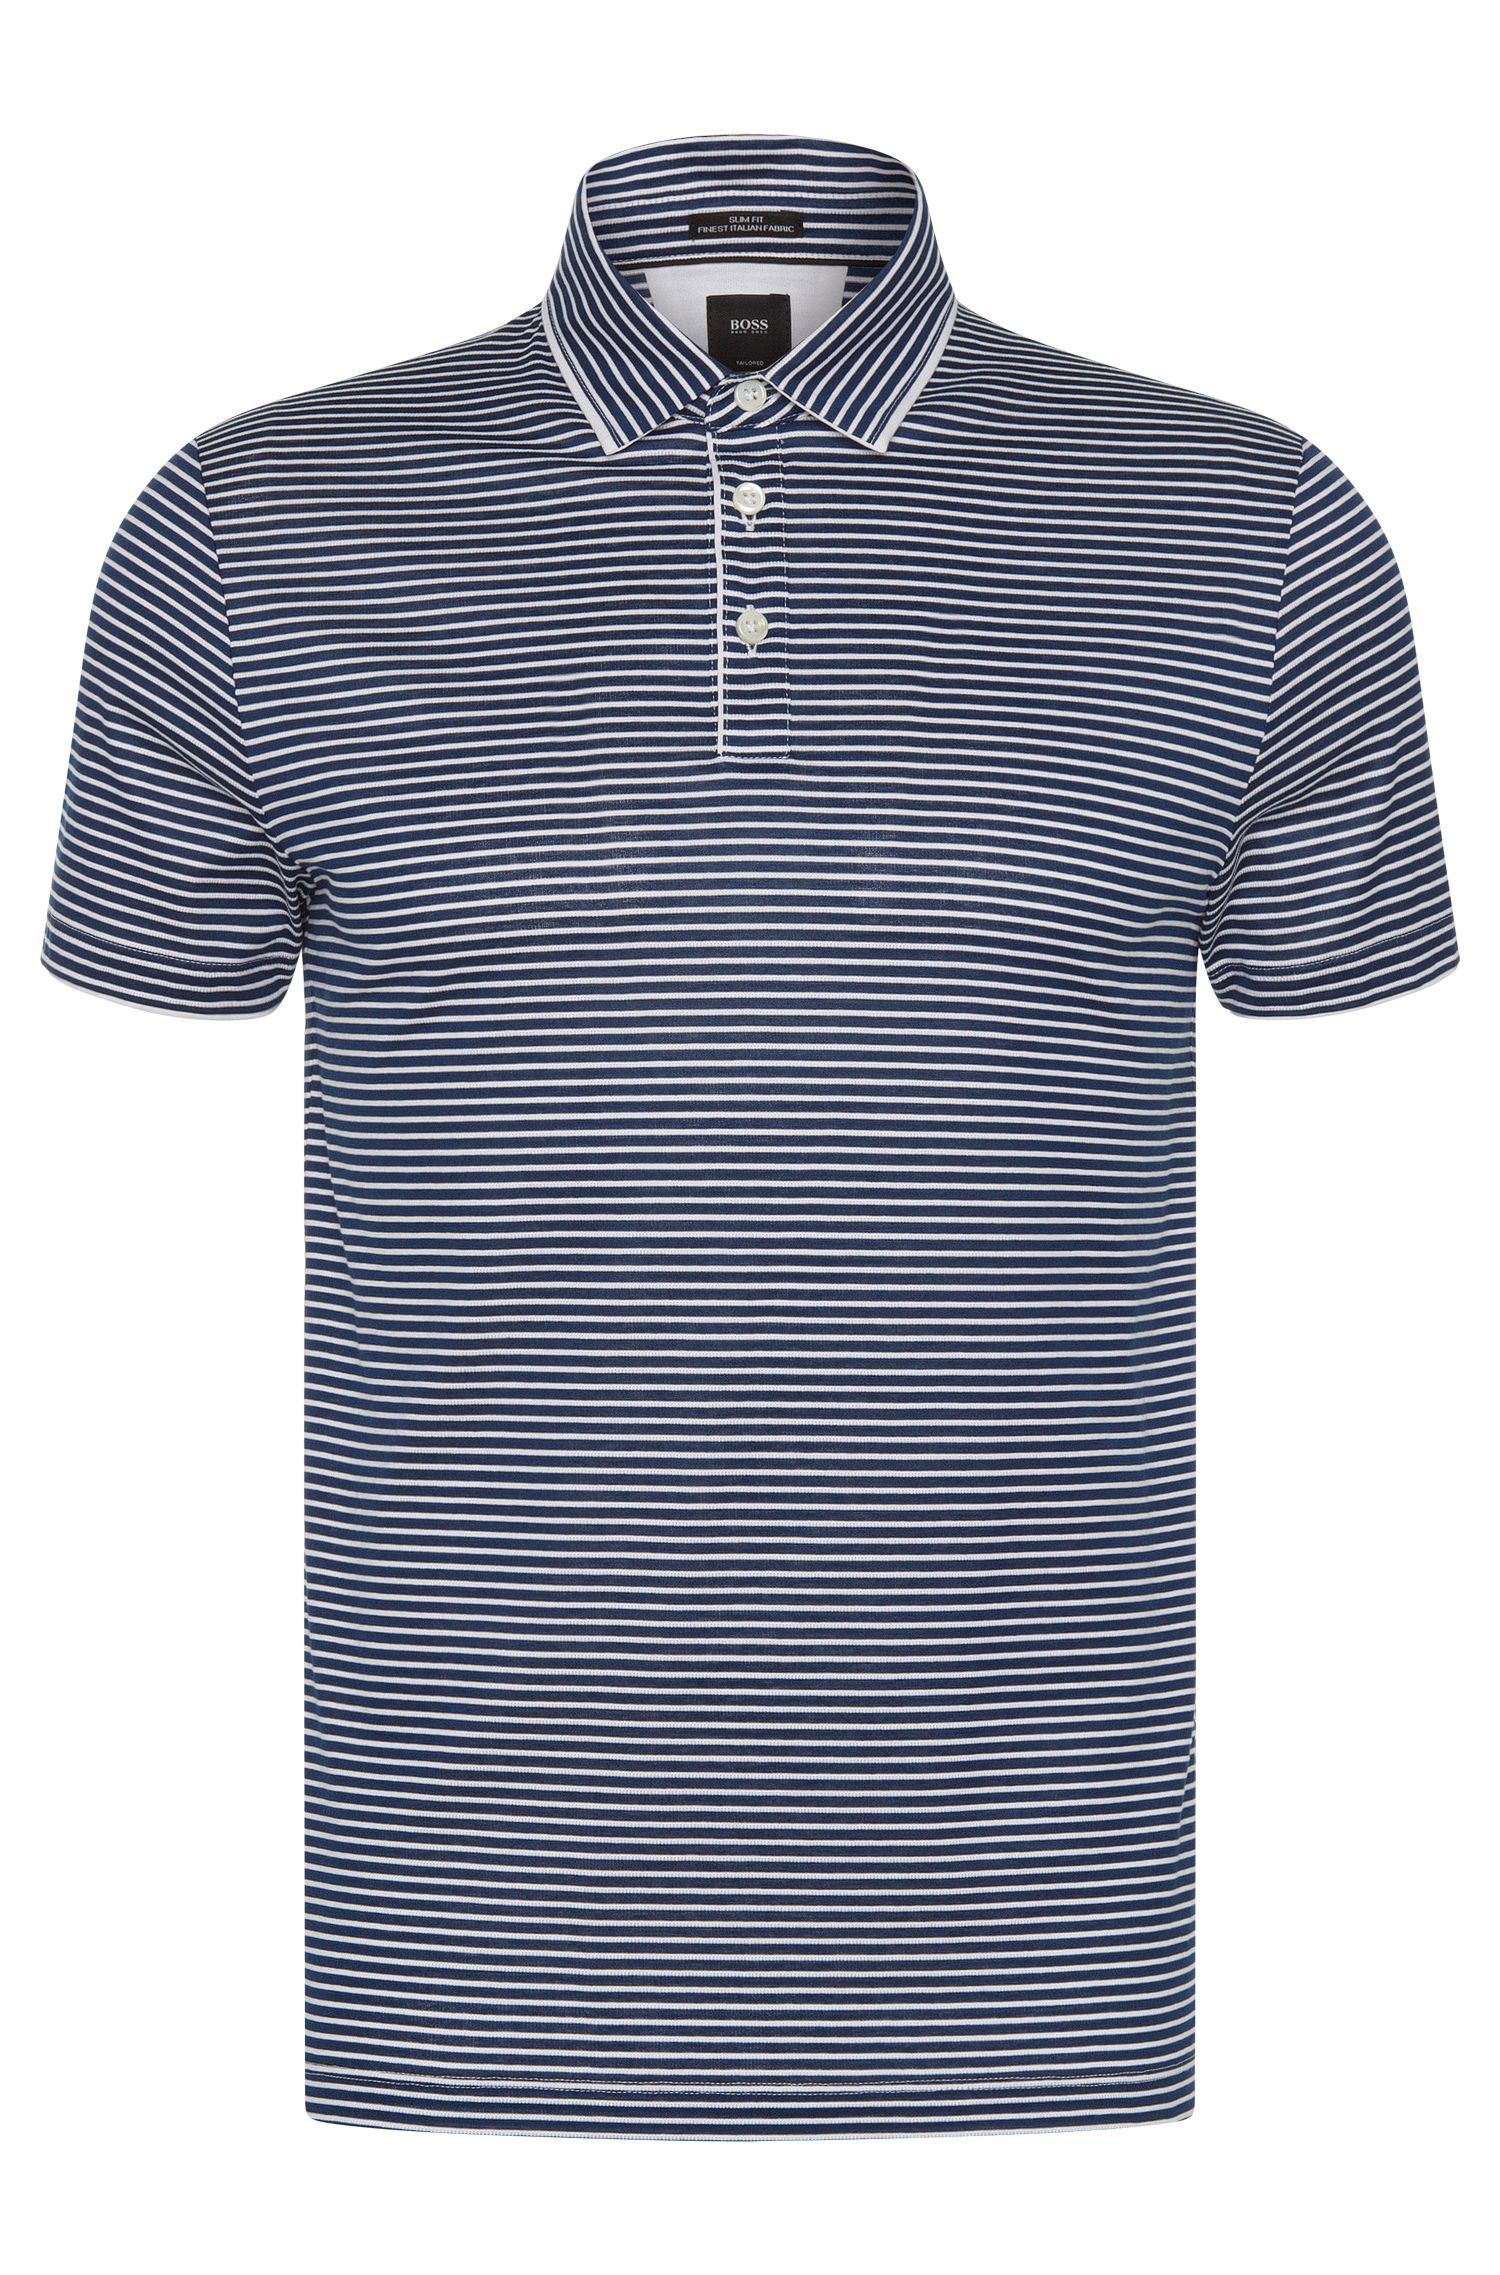 Italian Cotton Polo Shirt, Slim Fit | T-Pryde, Dark Blue